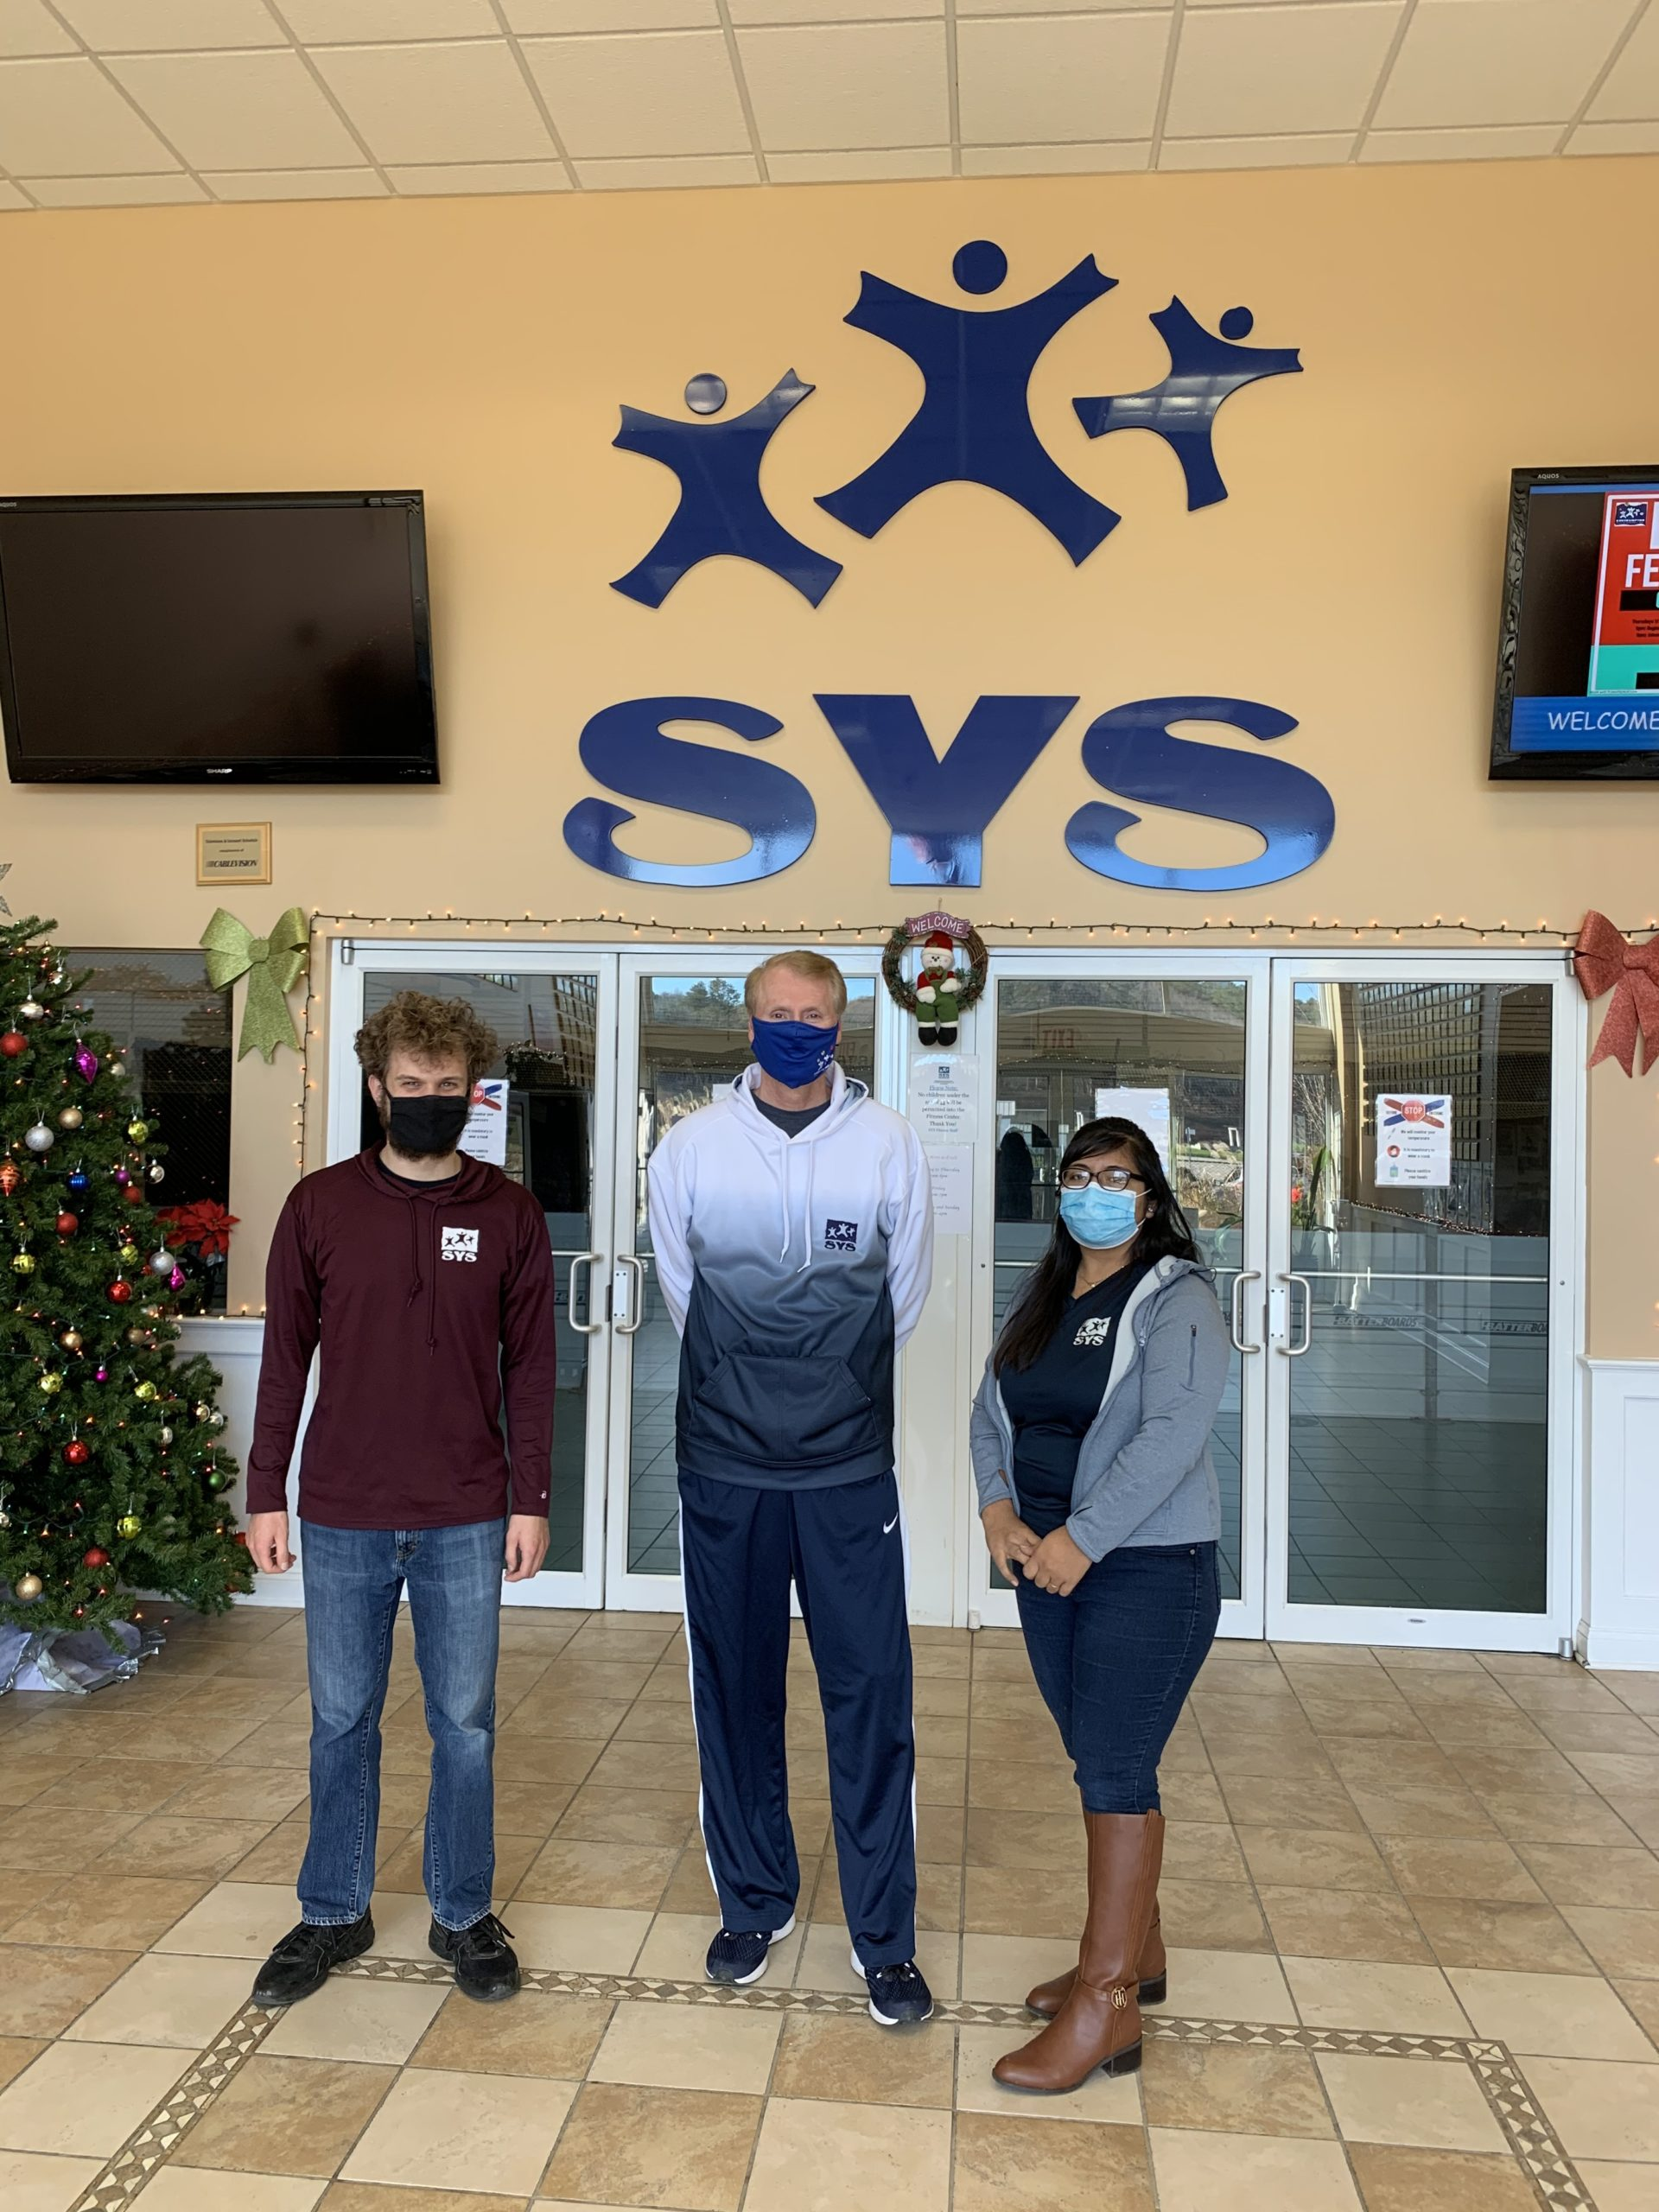 Evan Gravano, Scott Johnson, and Amairani Hernandez, staff members at Southampton Youth Services worked together to help save the life of a man who collapsed while playing pickle ball at the recreational center on November 30.